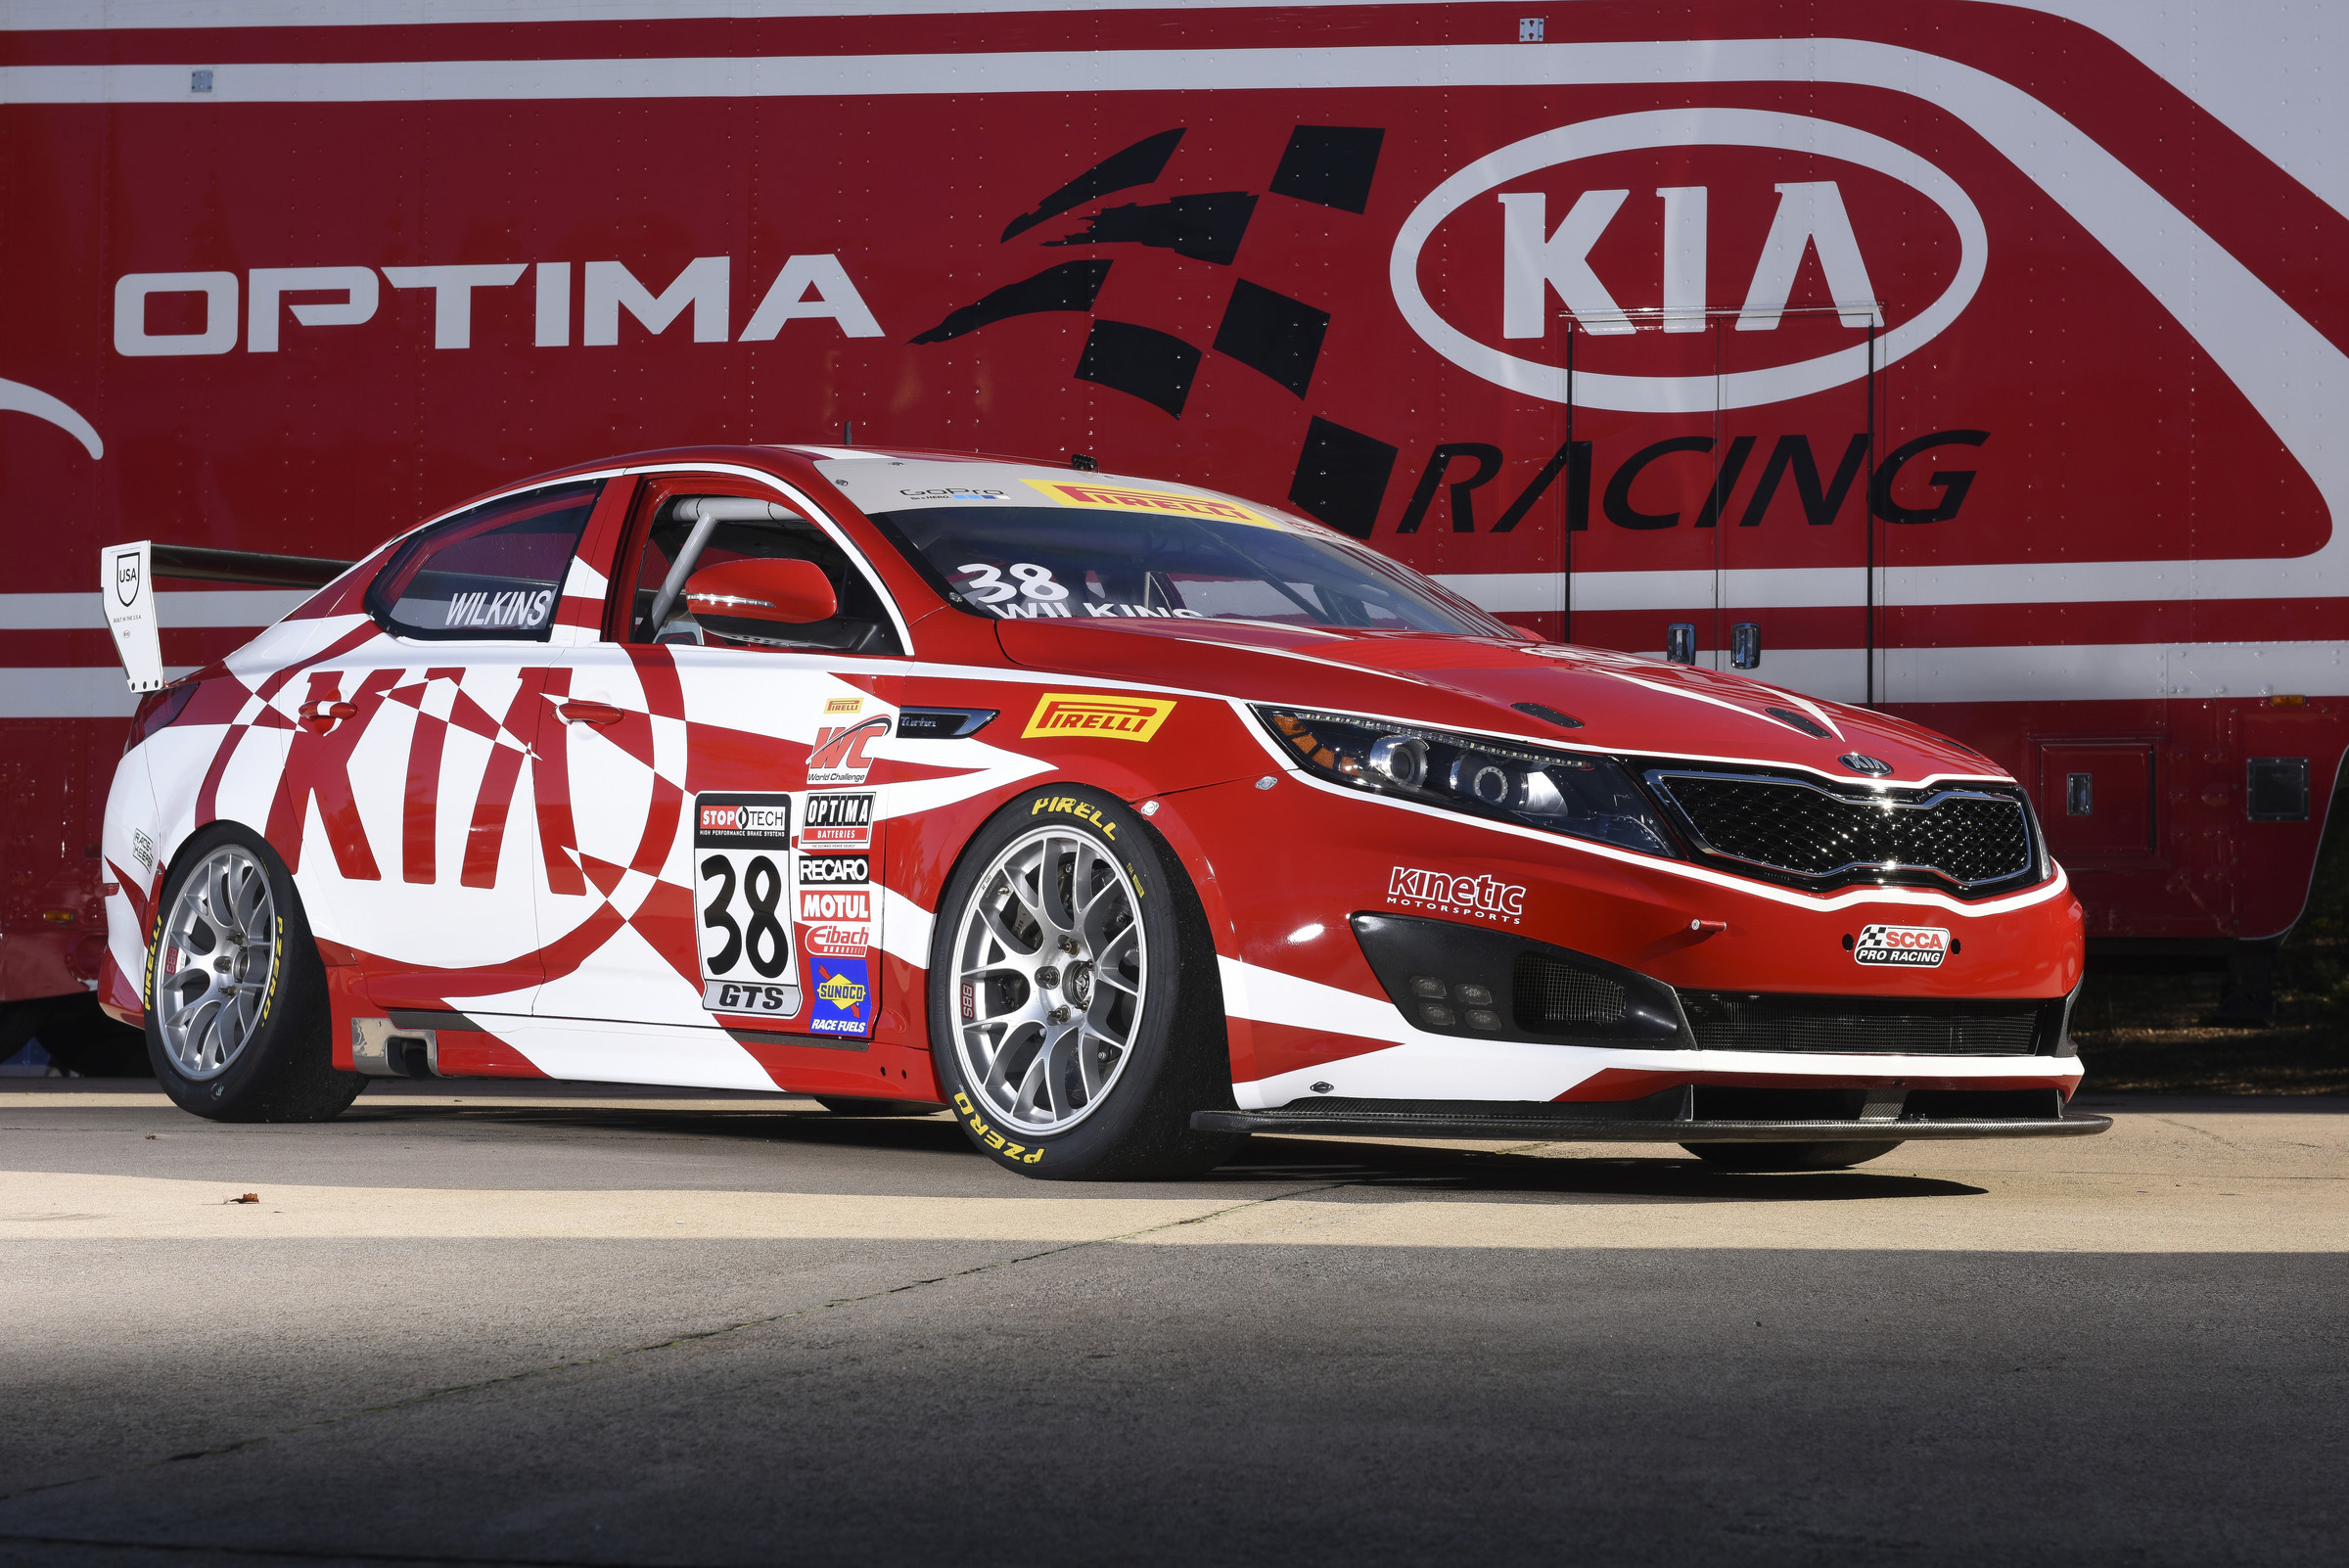 Kia Racing Optima features an exciting new livery for the 2015 racing season.